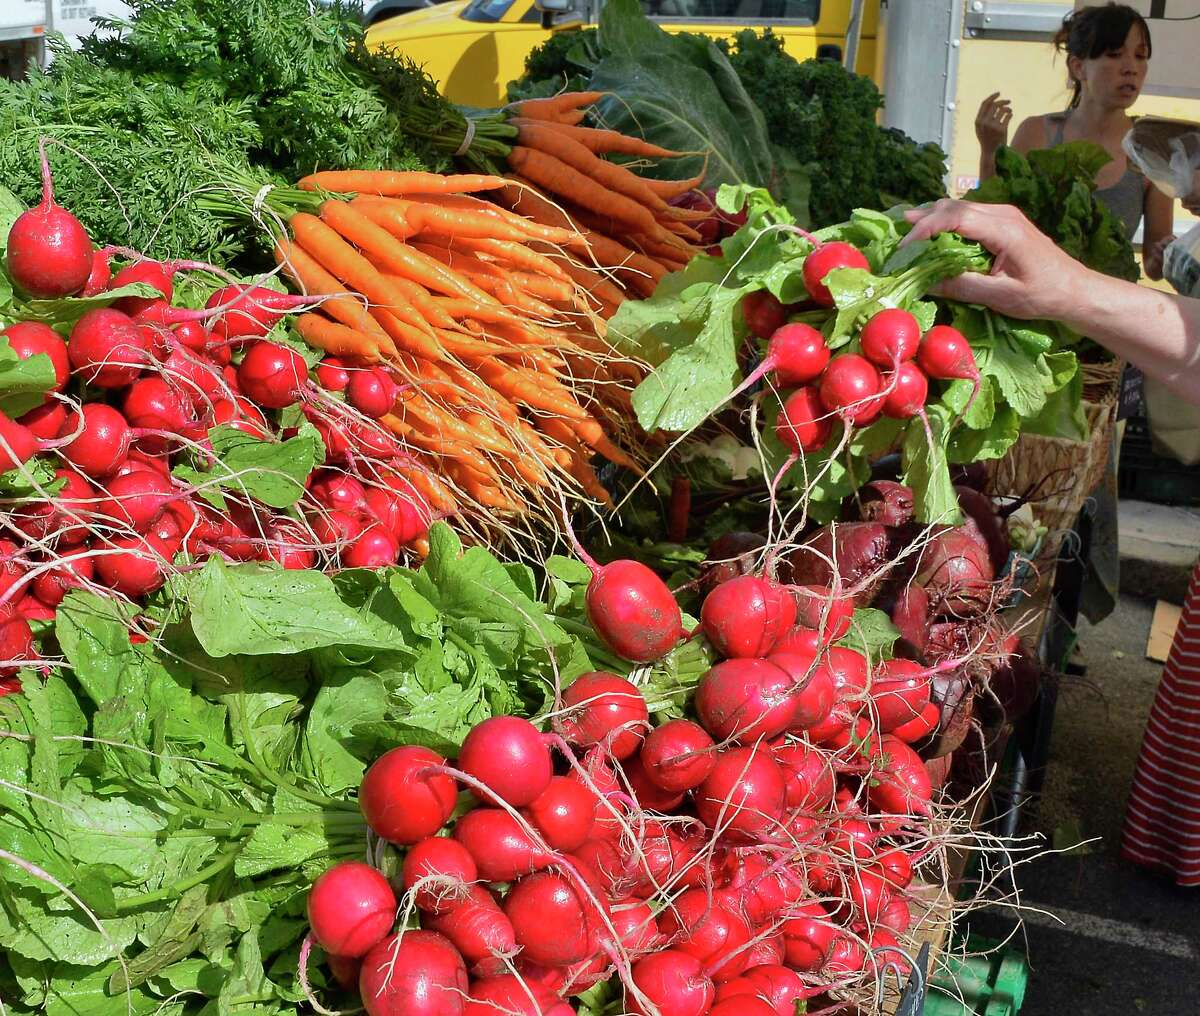 Fresh organic produce at the Denison Farm stand at the Troy Farmer's and Maker's Markets Saturday June 30, 2018 in Troy, NY. (John Carl D'Annibale/Times Union)